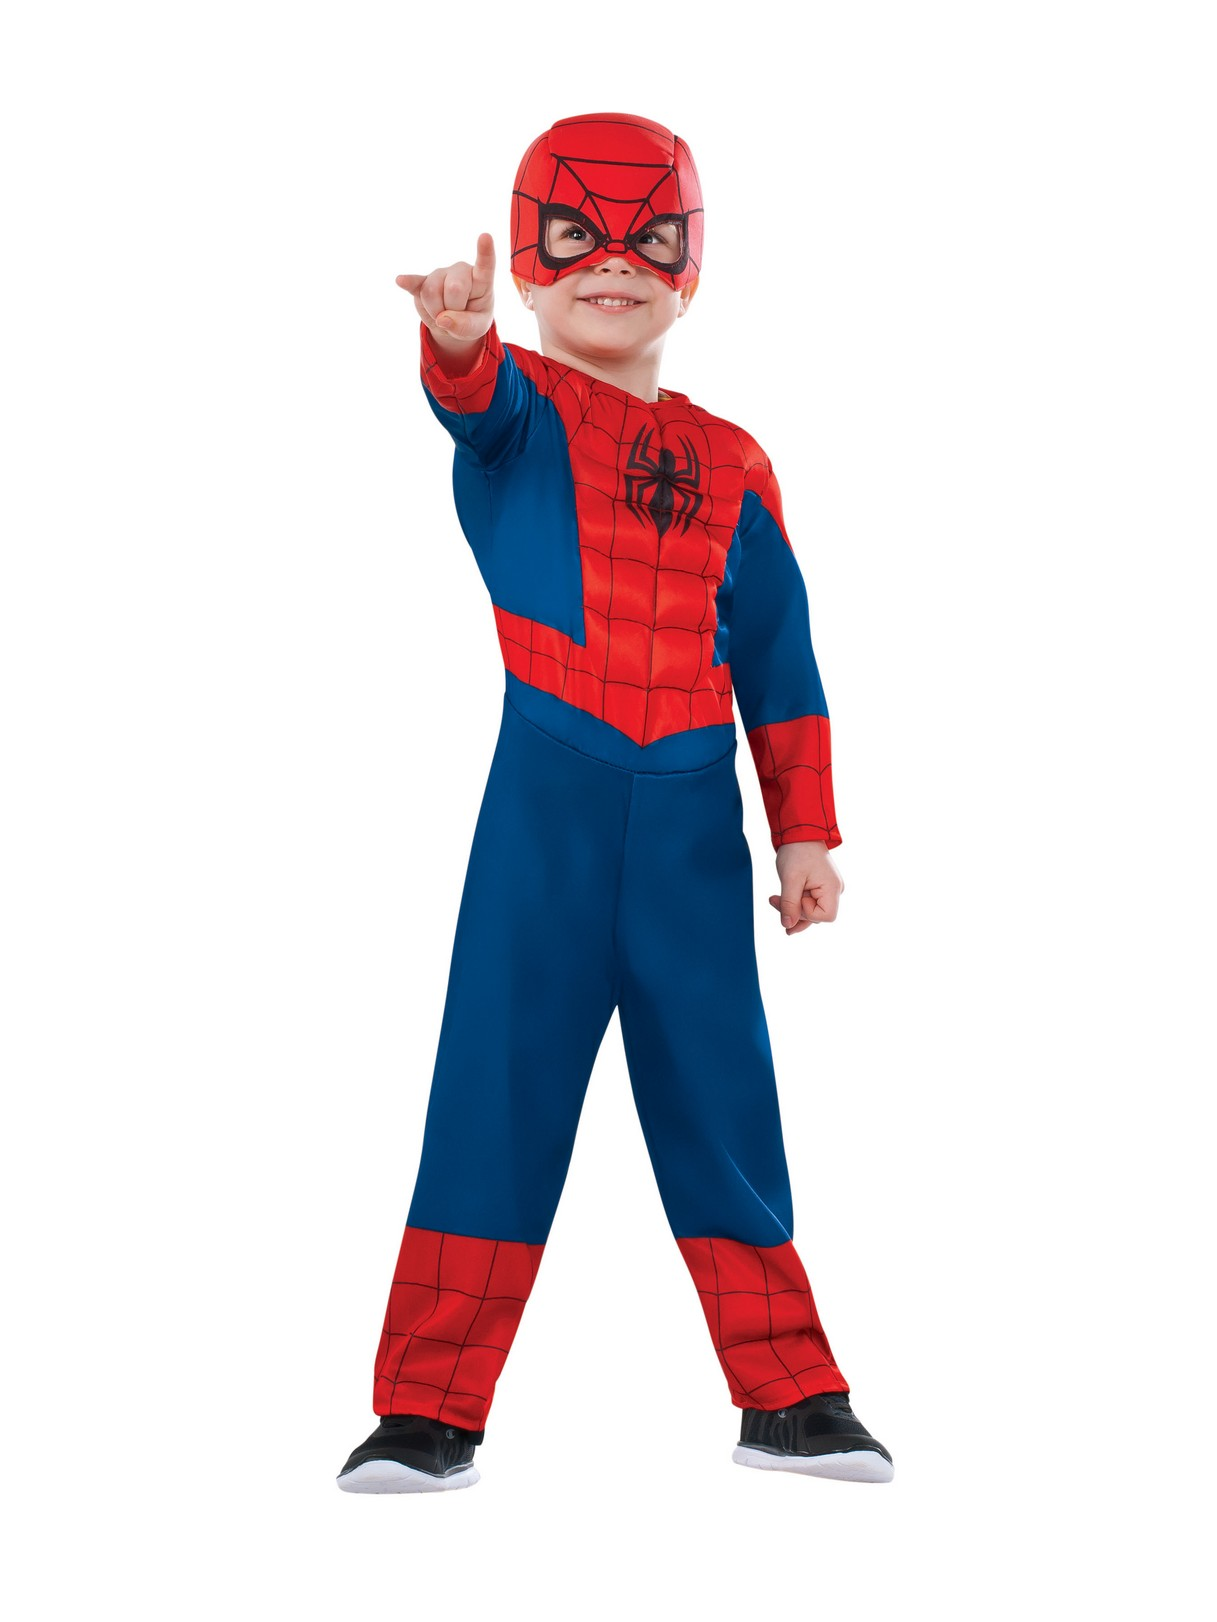 Spiderman Toddler Costume R620009-2T